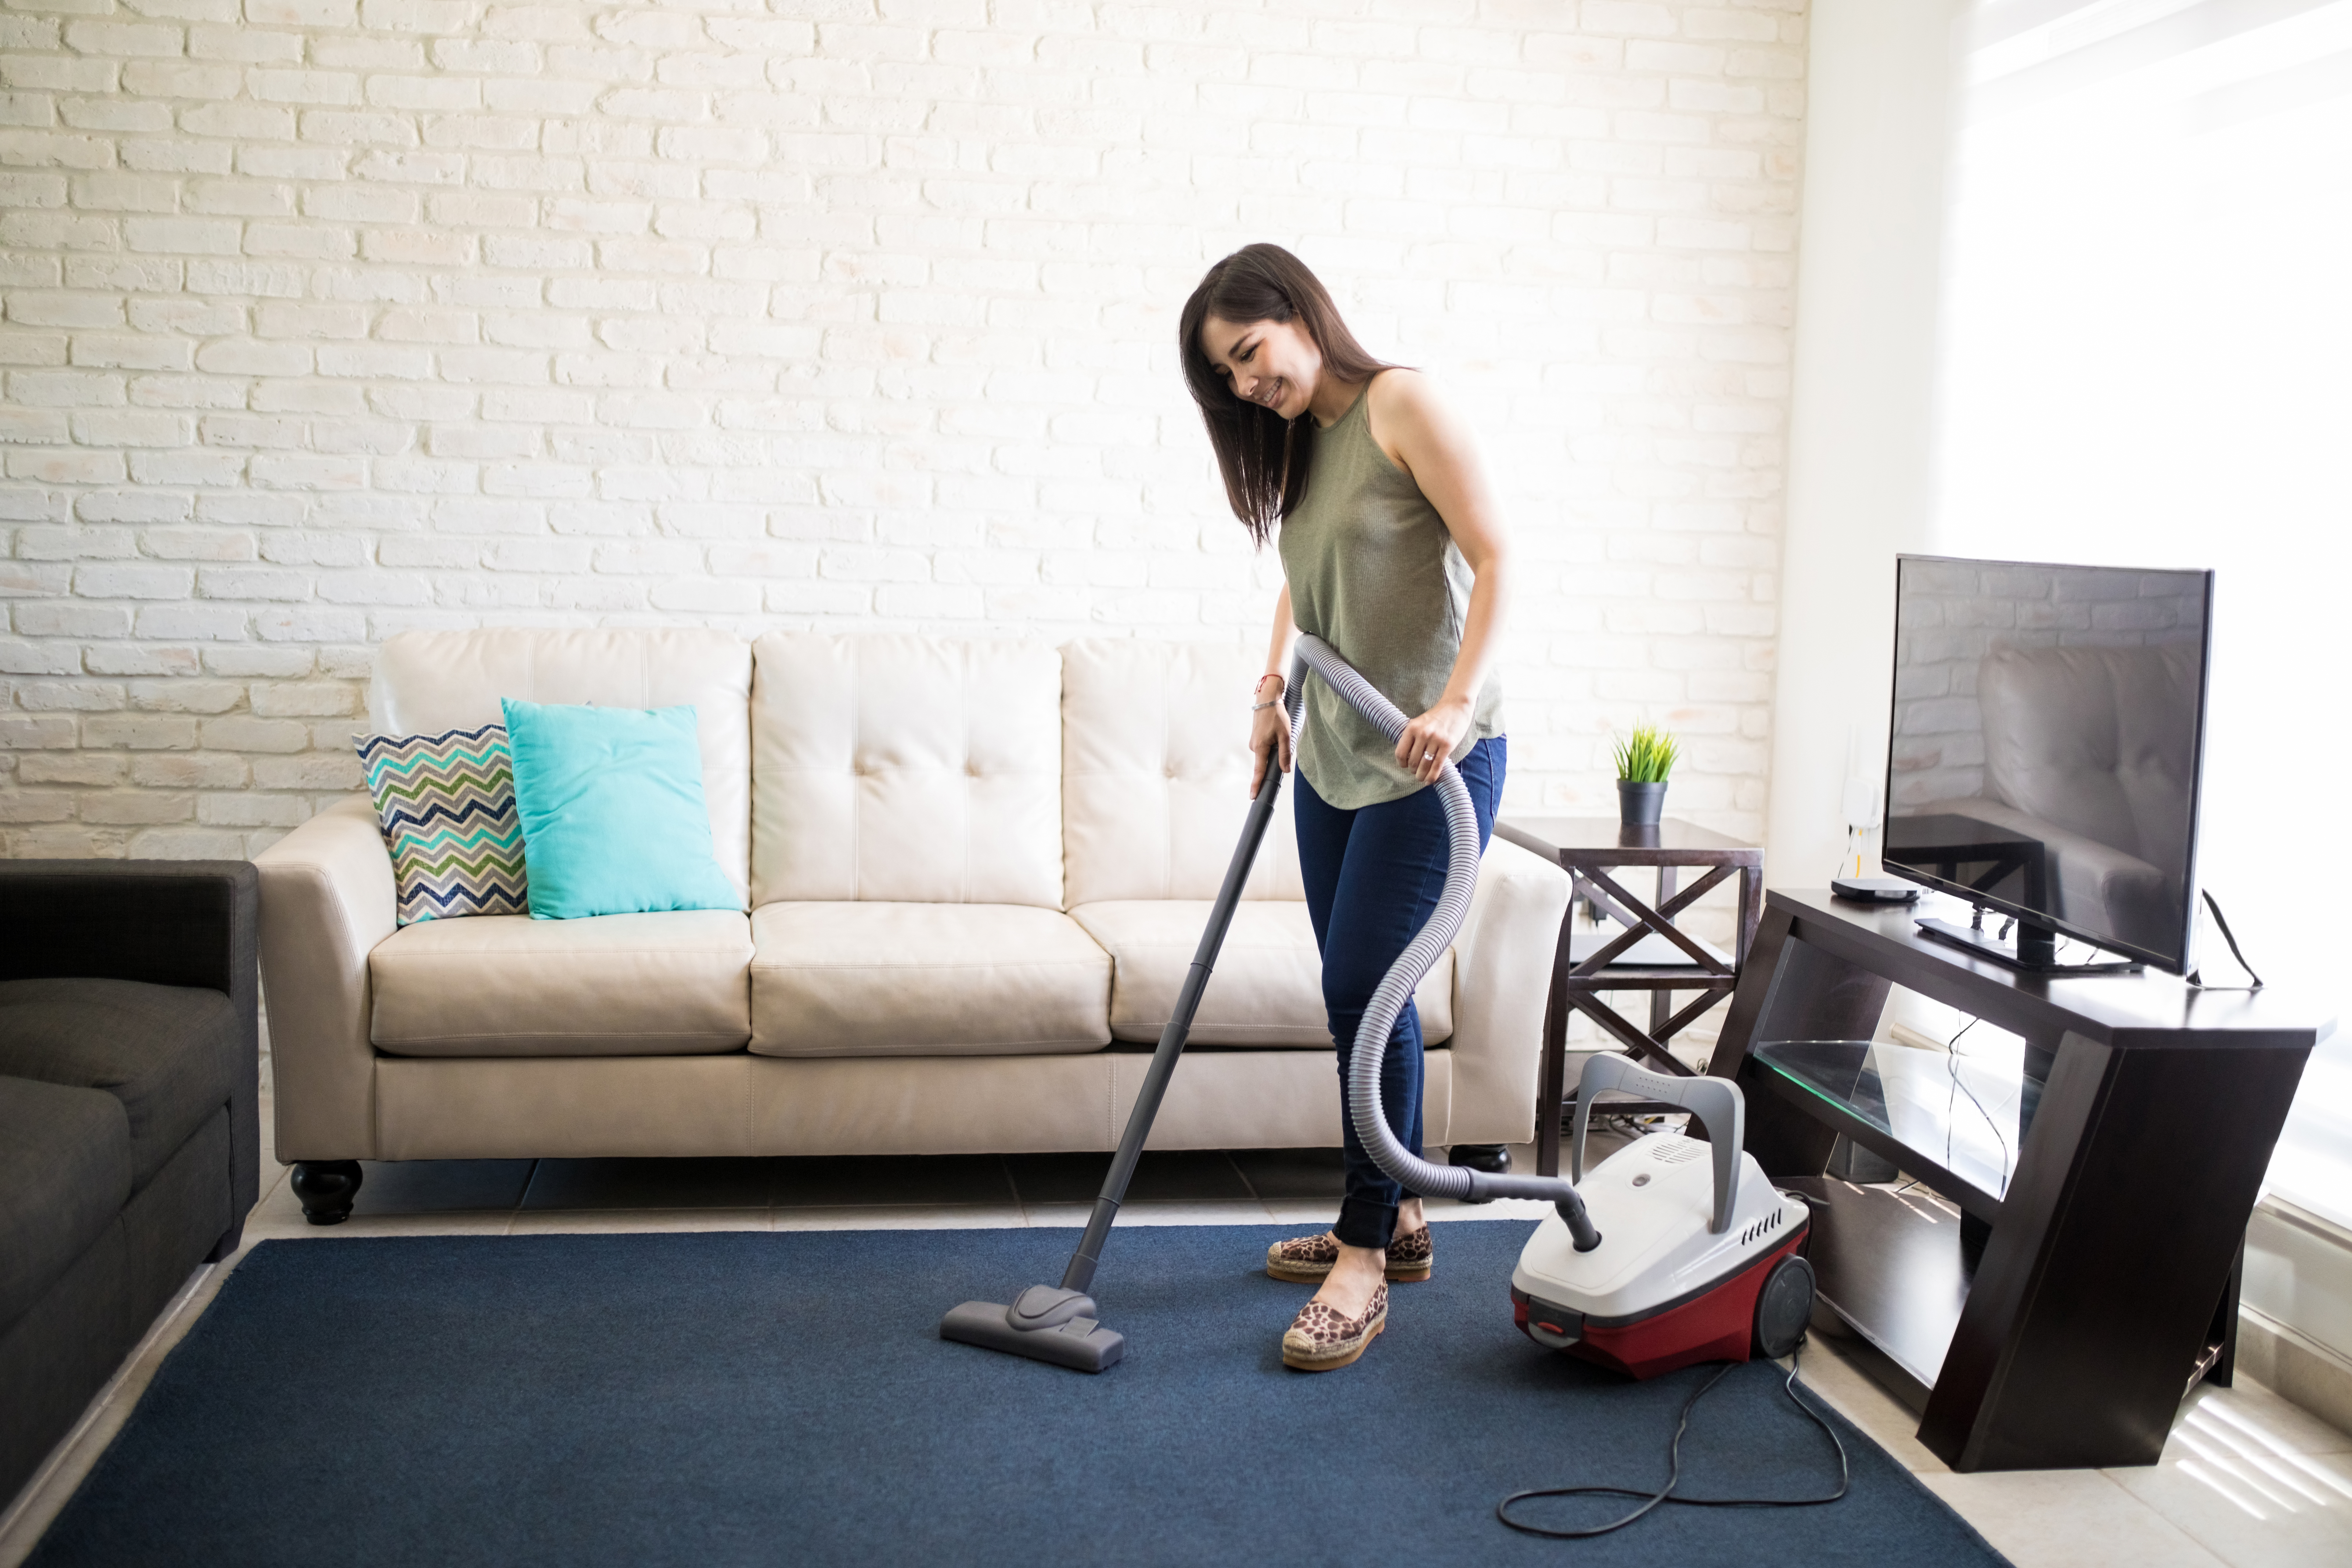 How to Keep a Vacuum Cleaner Smelling Fresh | Home Guides